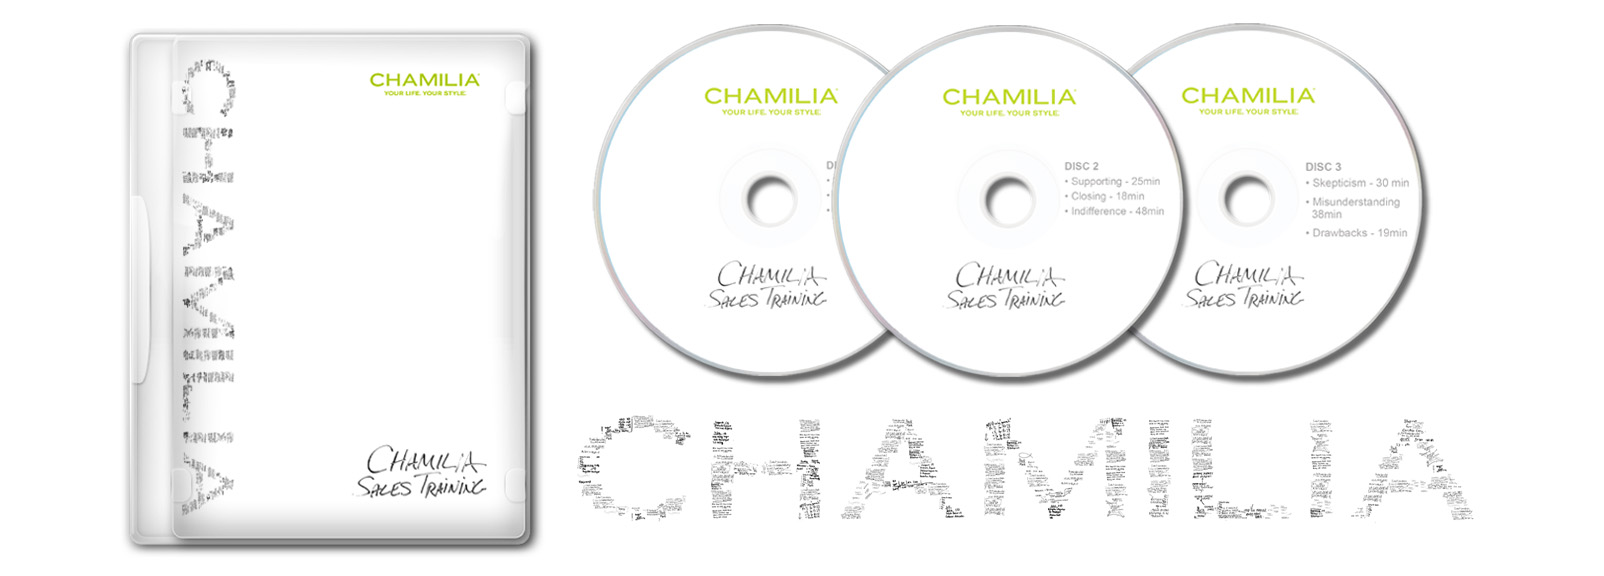 DVD case and DVDs for Chamilia's corporate sales training seminar which we produced. We also designed the DVD Menu. Sales training program Directed by  Cole Koehler .